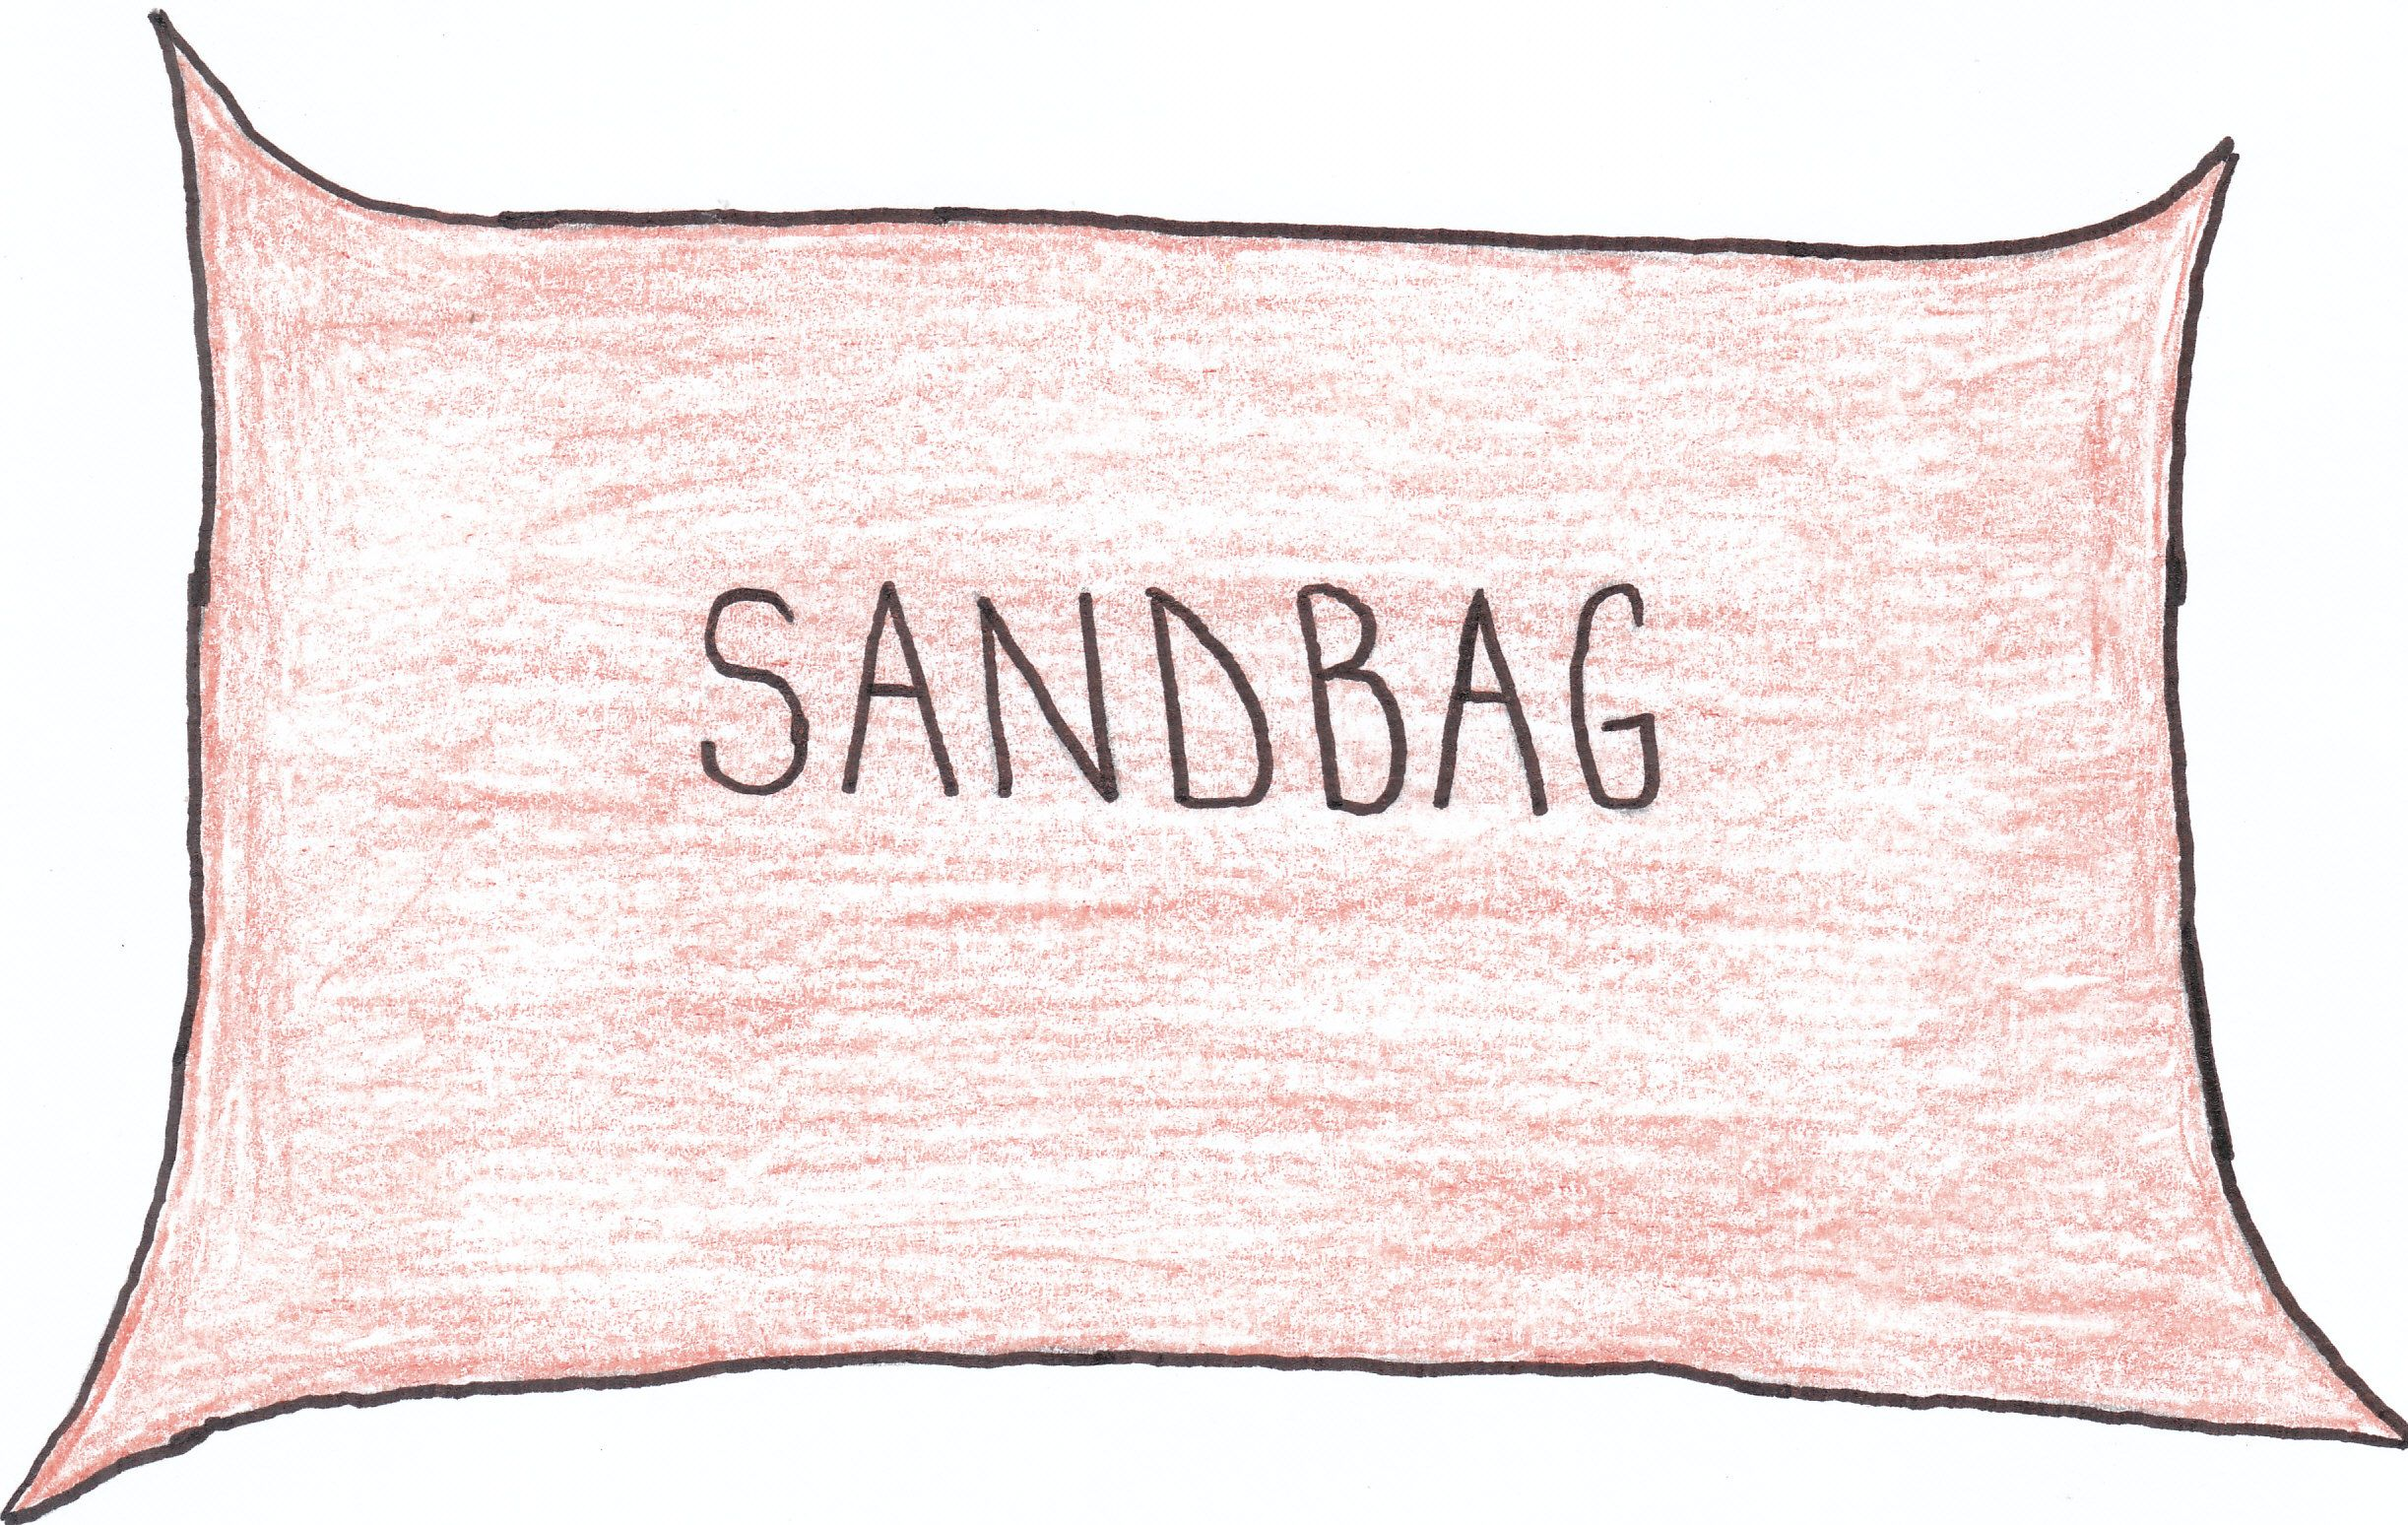 Overtricks in Spades are called bags or Sandbags